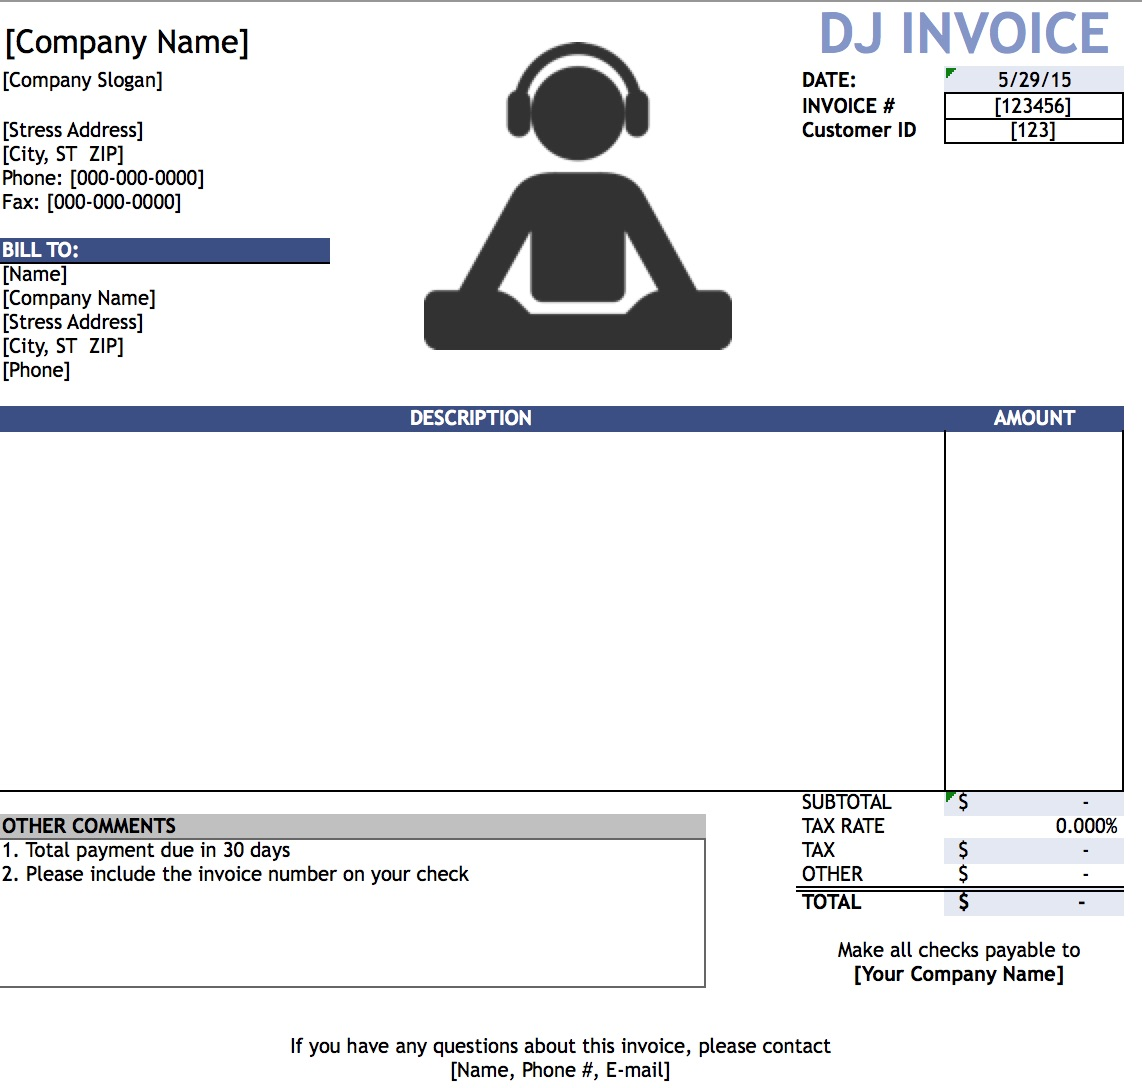 Free DJ Disc Jockey Invoice Template Excel PDF Word Doc - Microsoft excel invoice template for service business